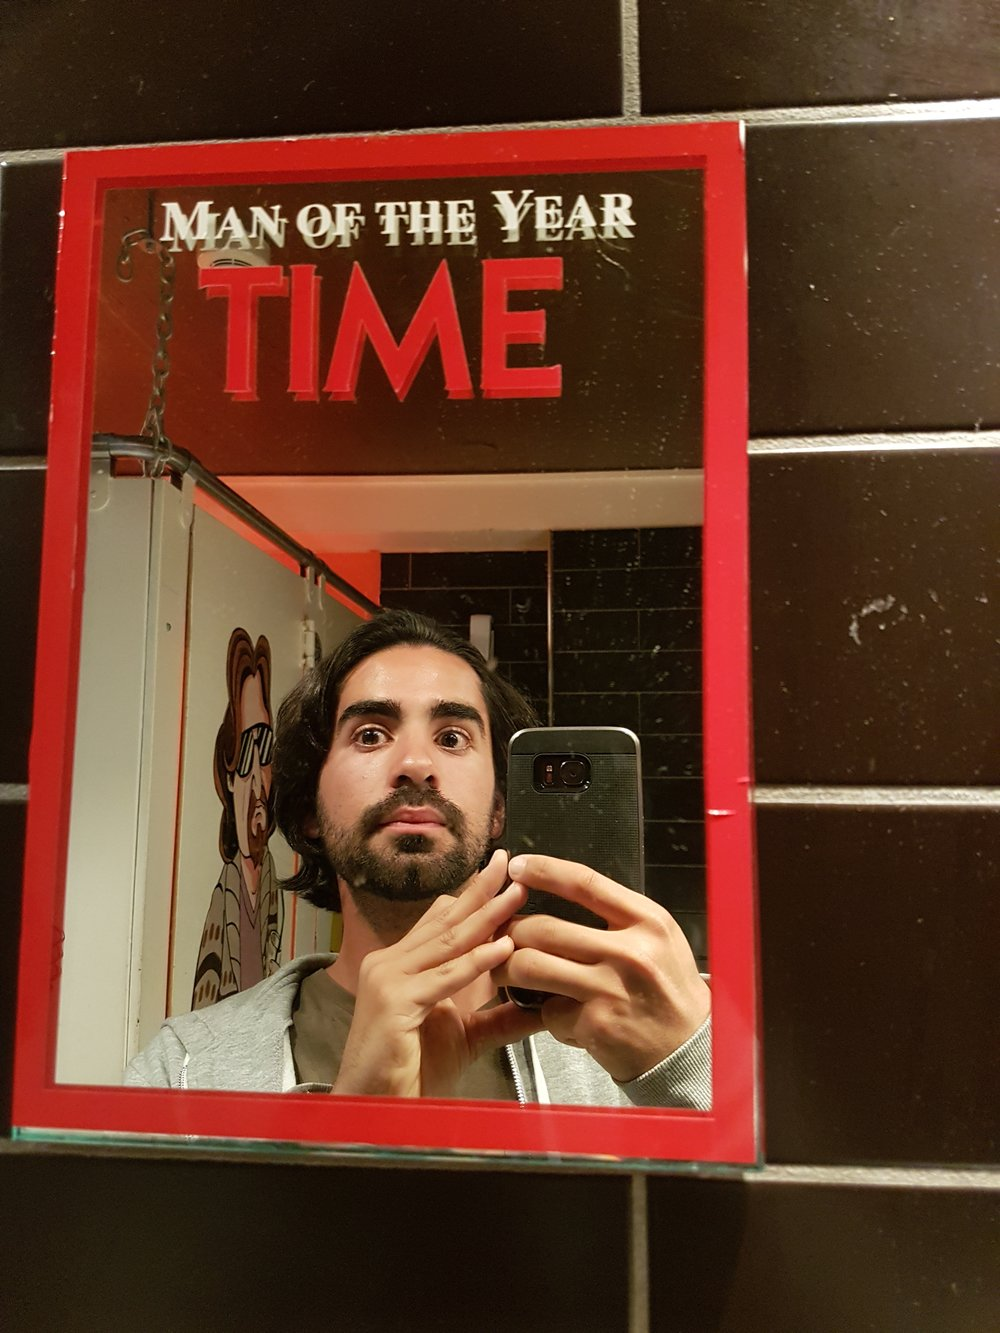 austin paz time man of the year reykjavik